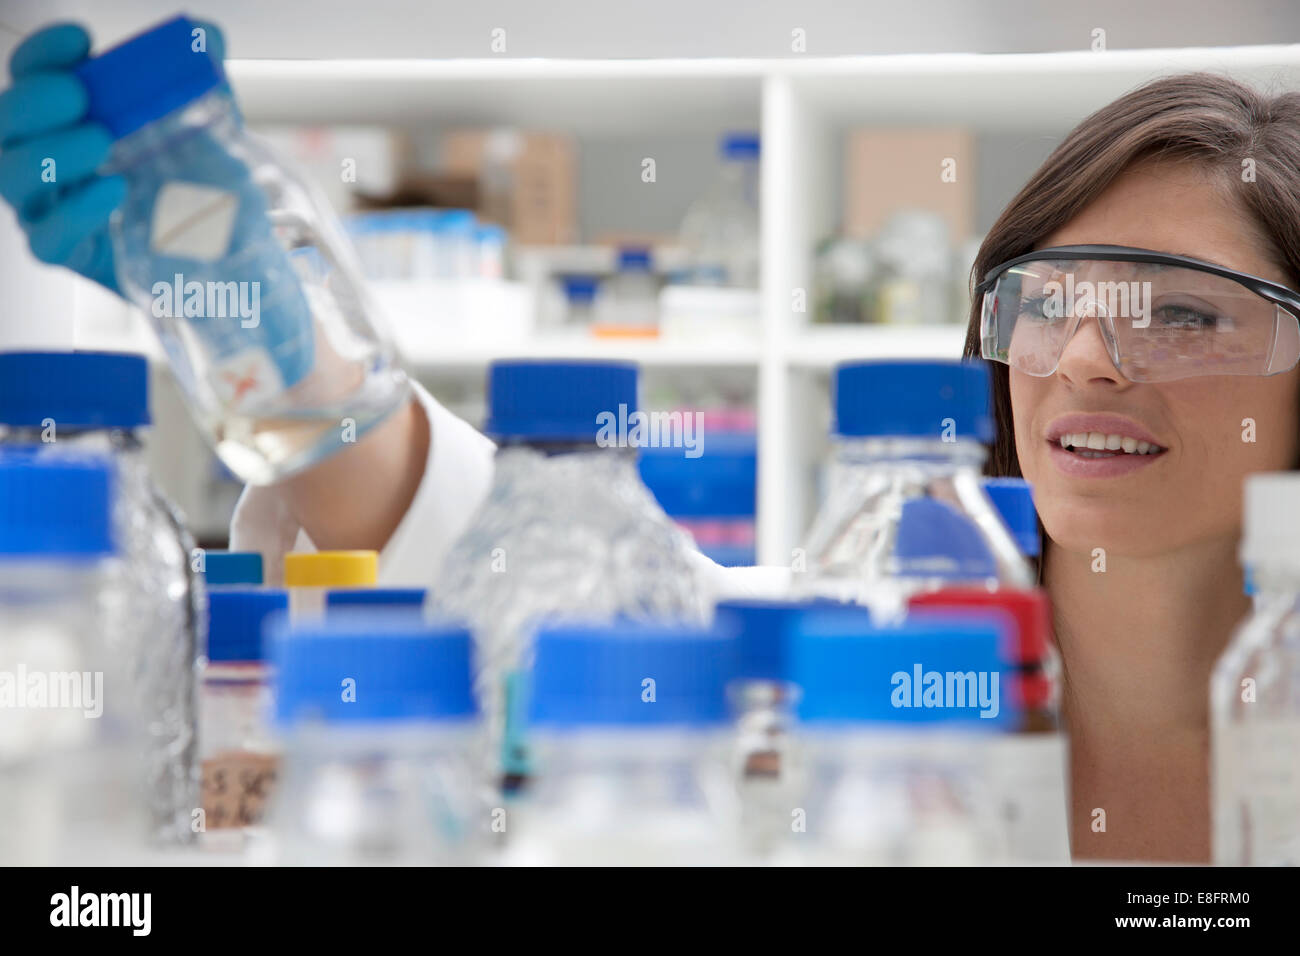 Laboratory technician looking through glass containers - Stock Image